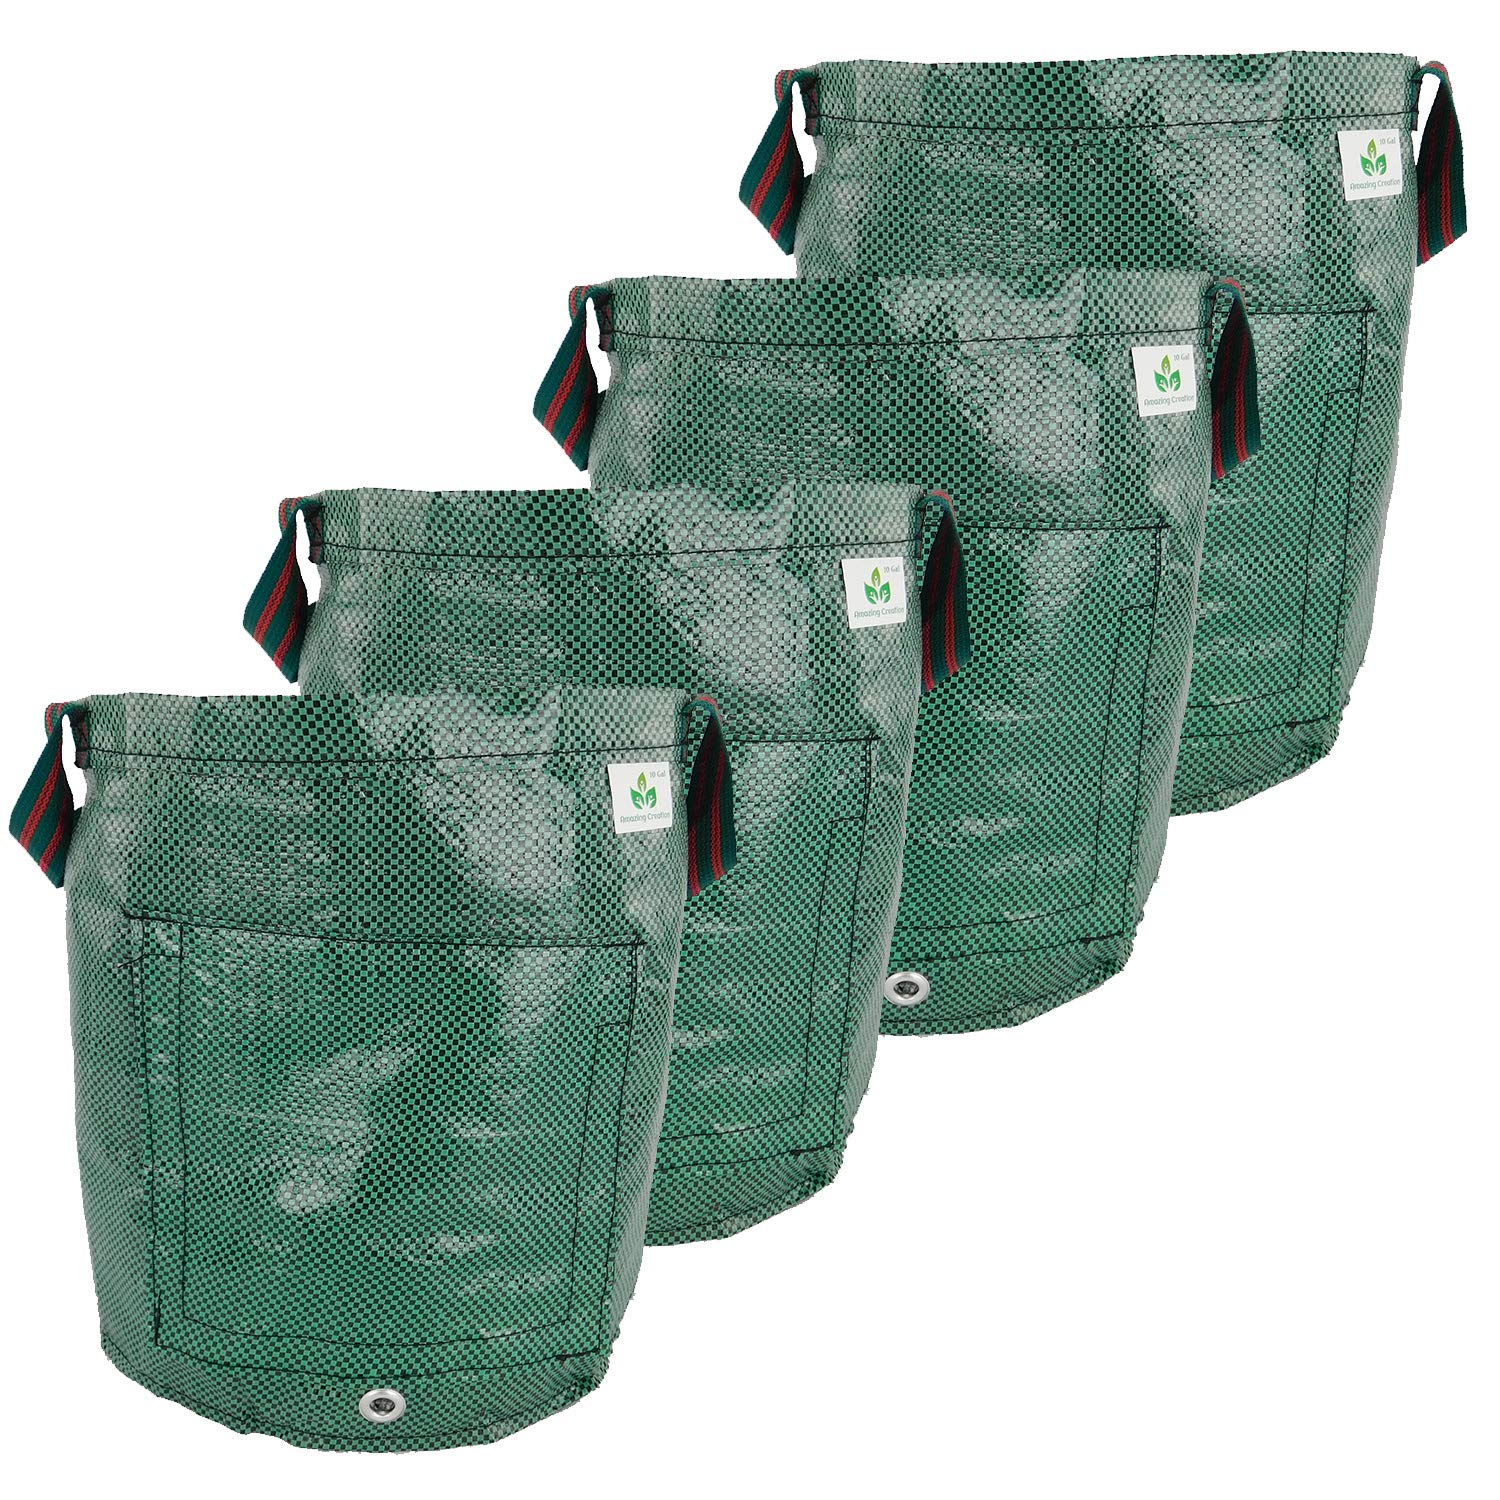 Amazing Creation Garden Potato Grow Bags (Pack of 4) 10 Gallon Heavy Duty Planting Pot with Access Flap for Harvesting Potatoes, Onions, Carrots, Radishes, Parsnips and More